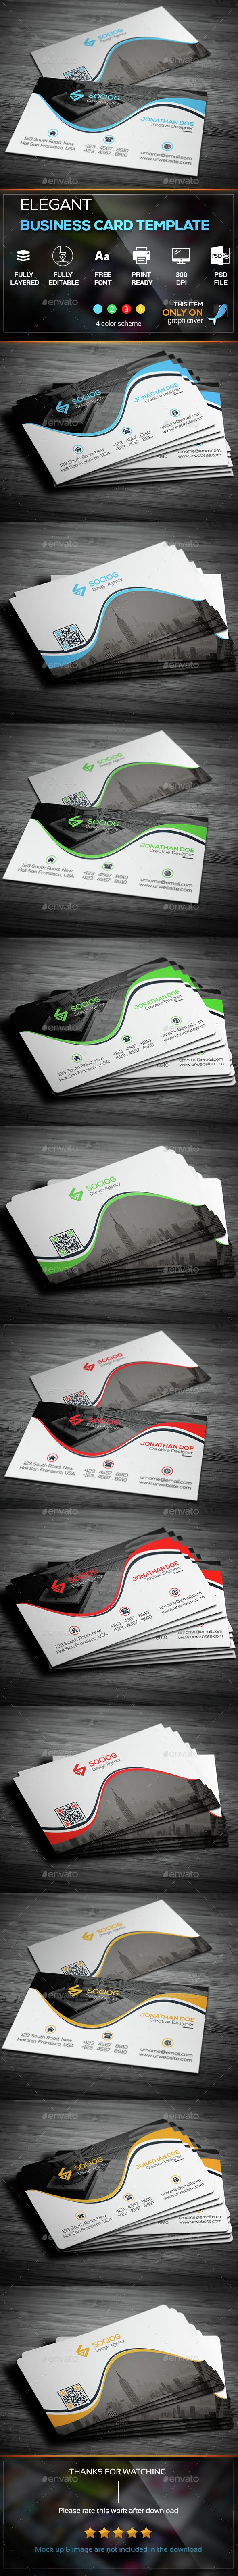 Elegant Business Card Template — Photoshop PSD #business card #black • Available here → https://graphicriver.net/item/elegant-business-card-template/15316087?ref=pxcr